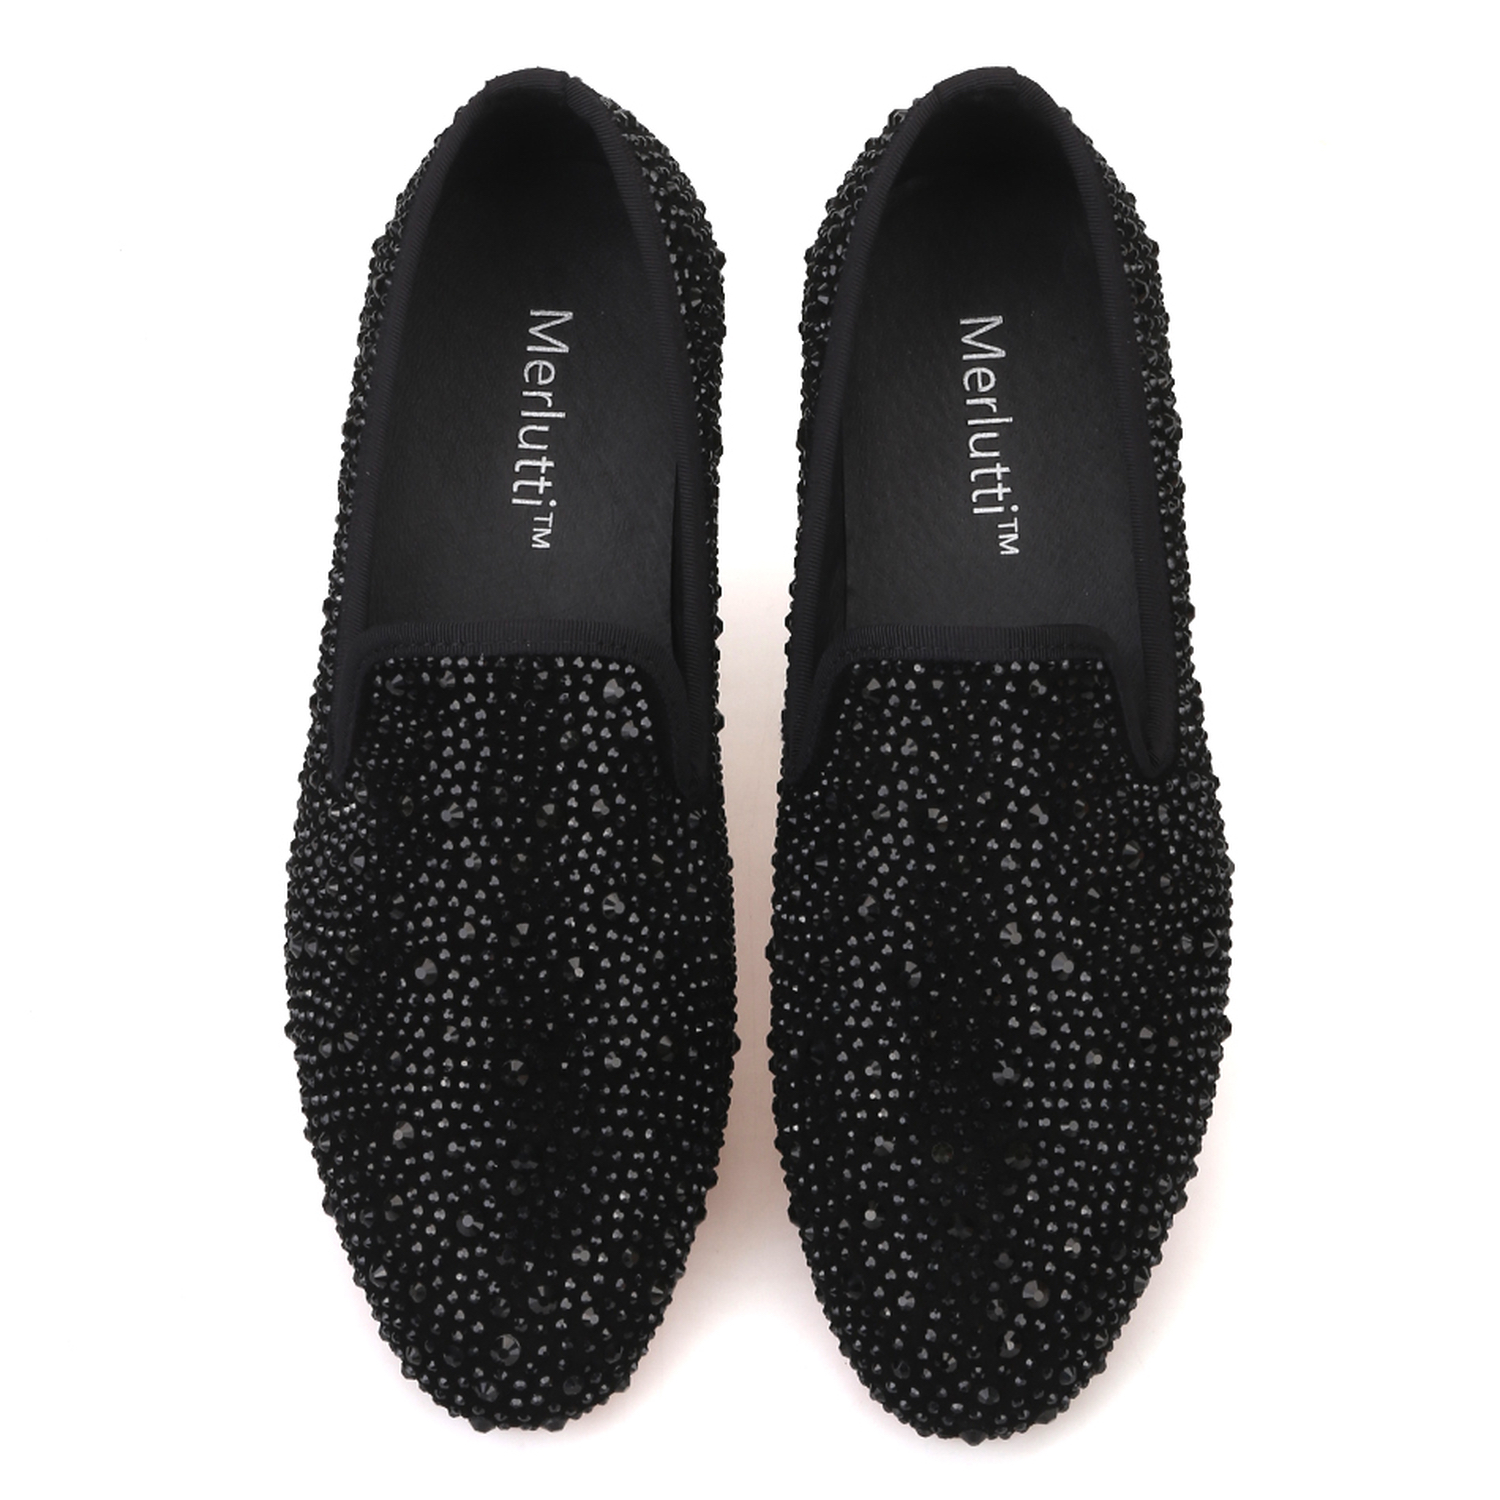 6d21988b6bf Black Crystals Suede Loafers - Merlutti